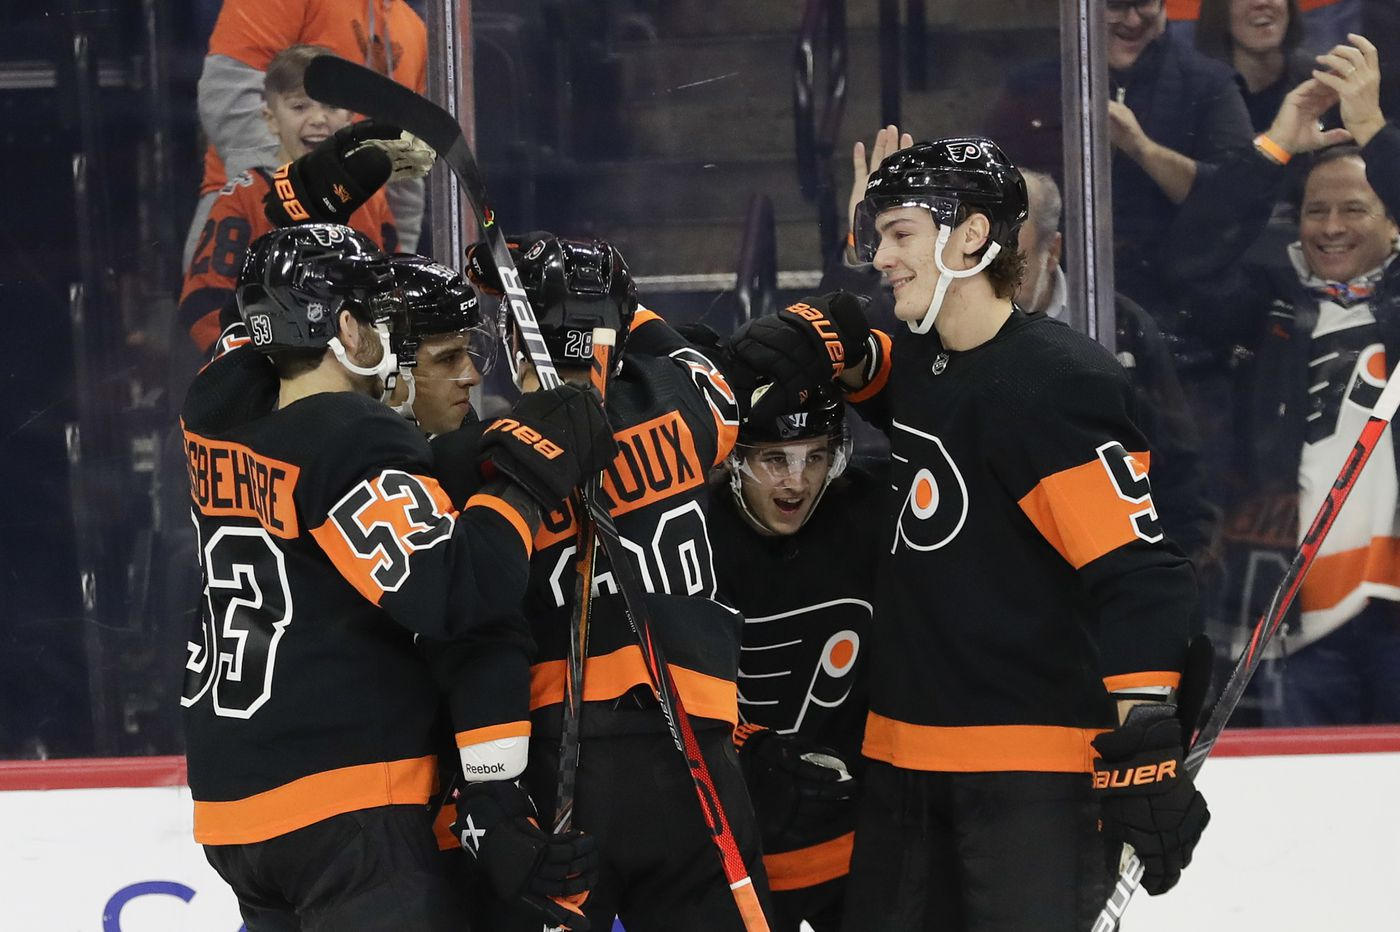 Fighting, power play woes, and other observations from the Flyers' 4-3 win over Senators